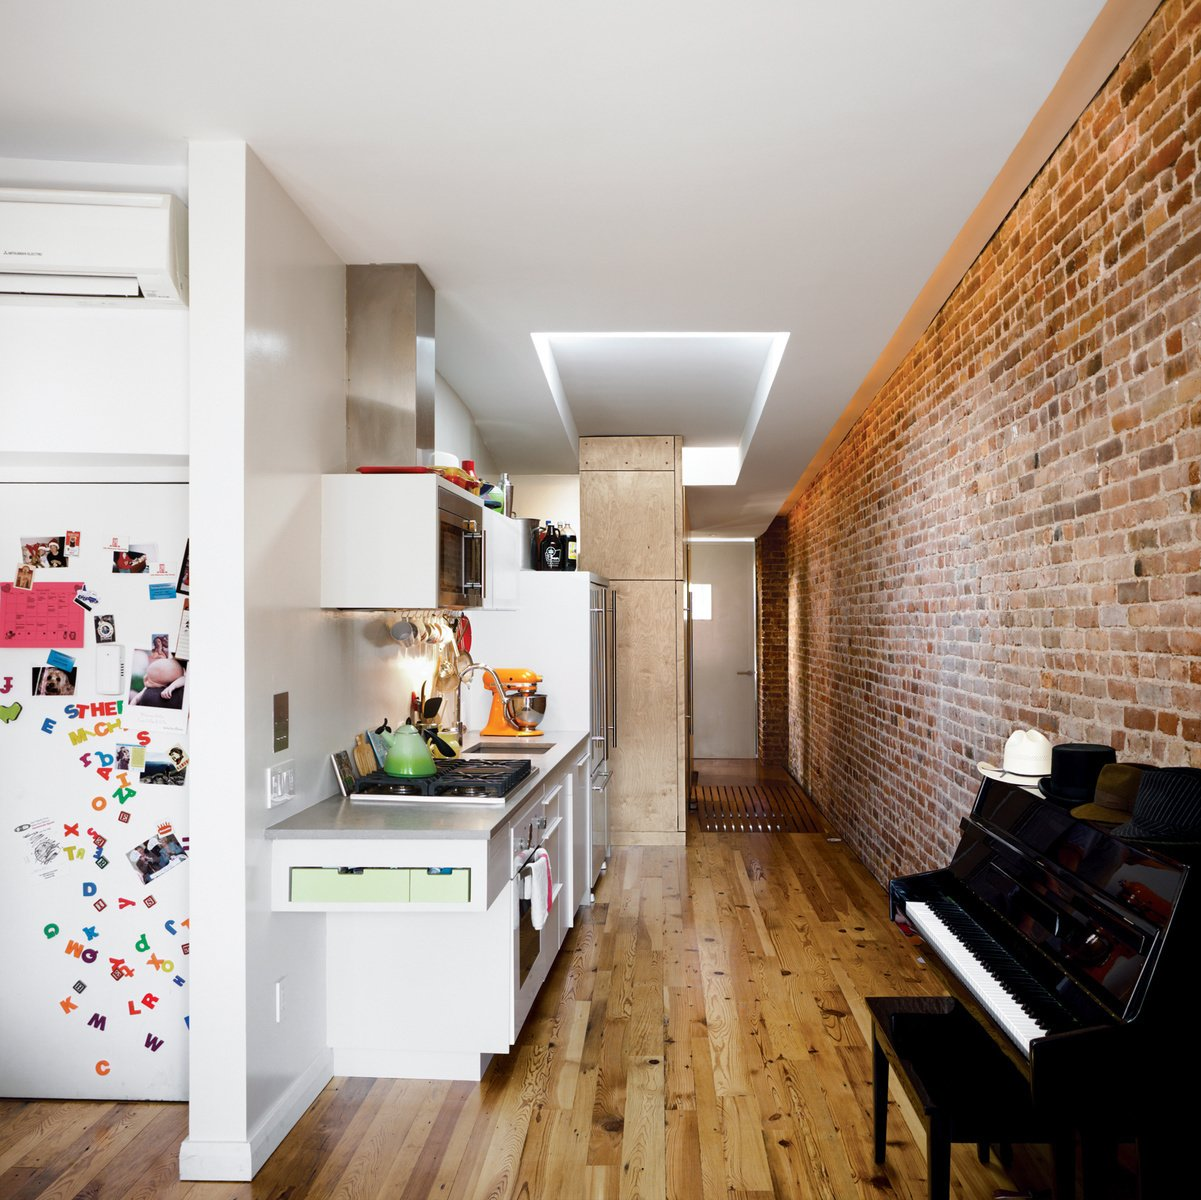 https://images.dwell.com/photos-6063391372700811264/6133554560611737600-large/narrow-kitchen-in-new-york-city-small-apartment.jpg